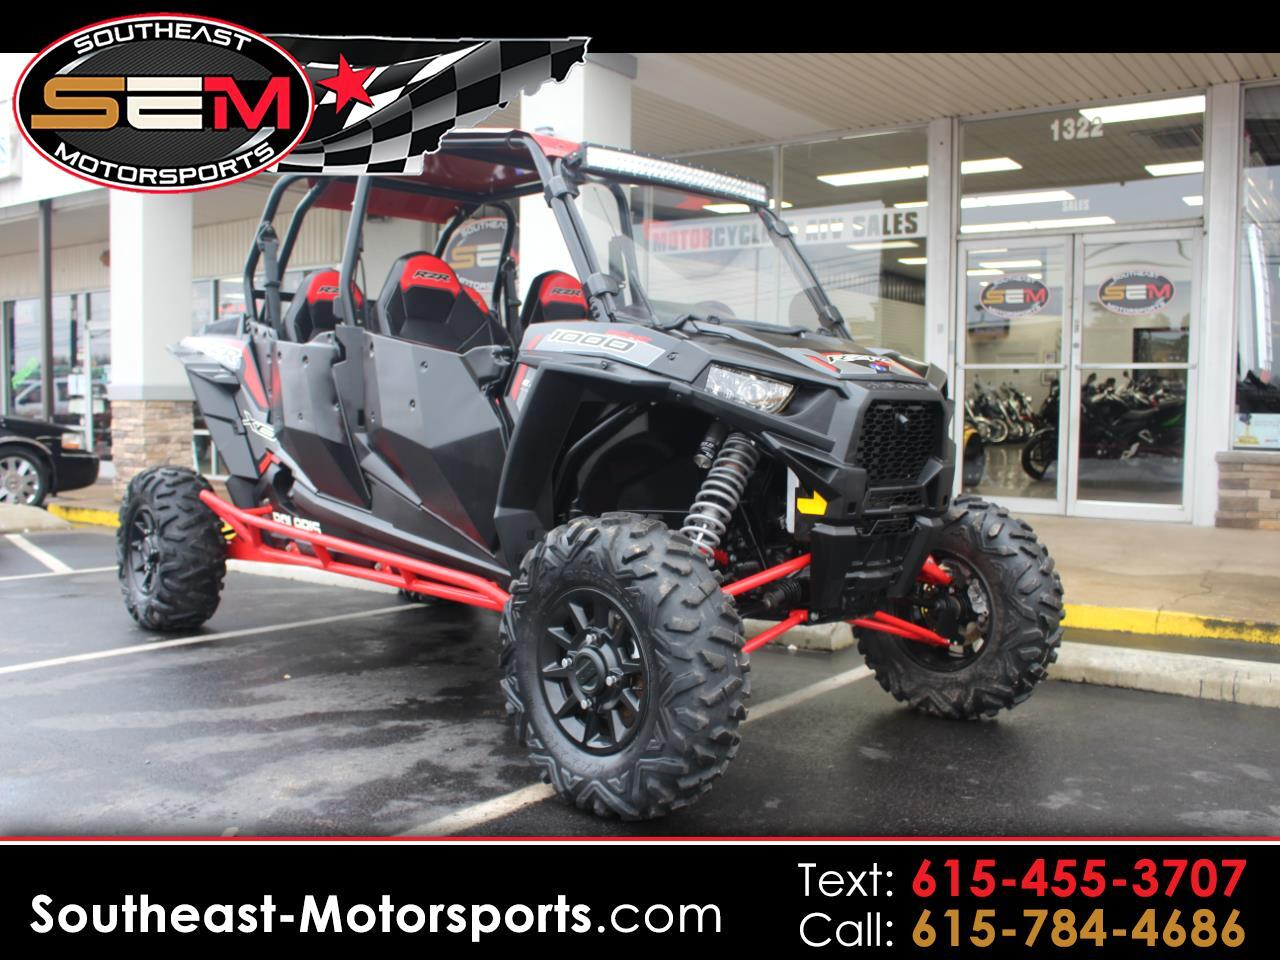 2018 Polaris RZR 1000 XP RIDE COMMAND